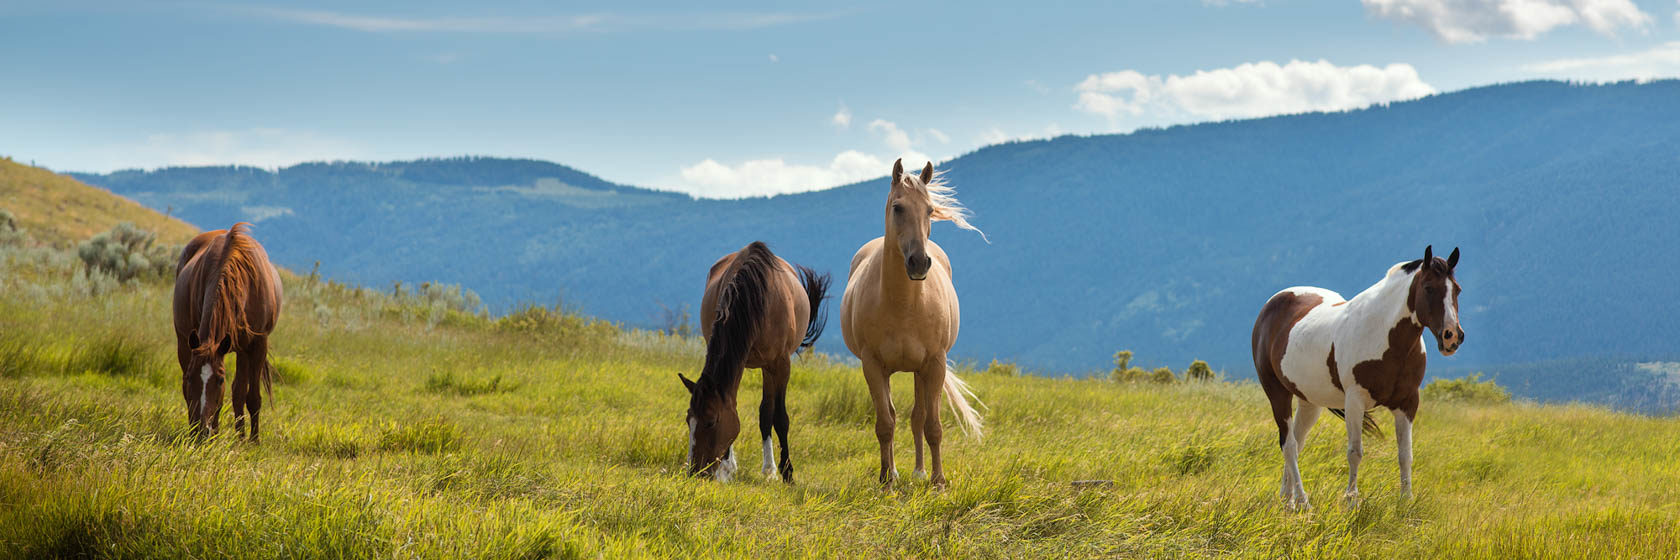 Retired horses grazing in a field